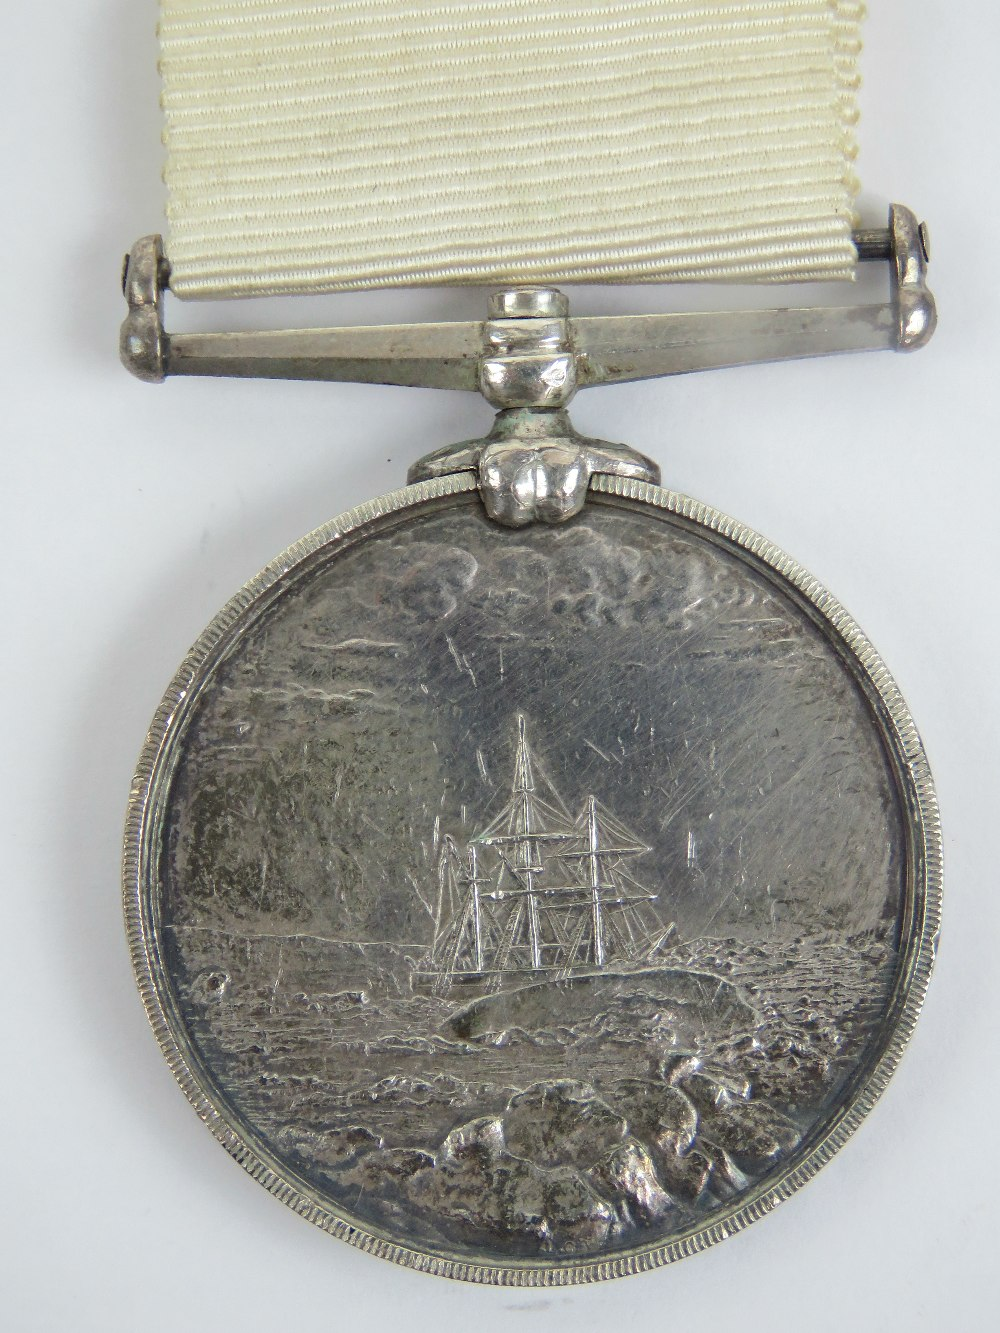 Lot 30 - An Arctic medal with ribbon; British Arctic Expeditions of 1875-76, 'J. Cooper Pv OFFr 2 C? H.M.